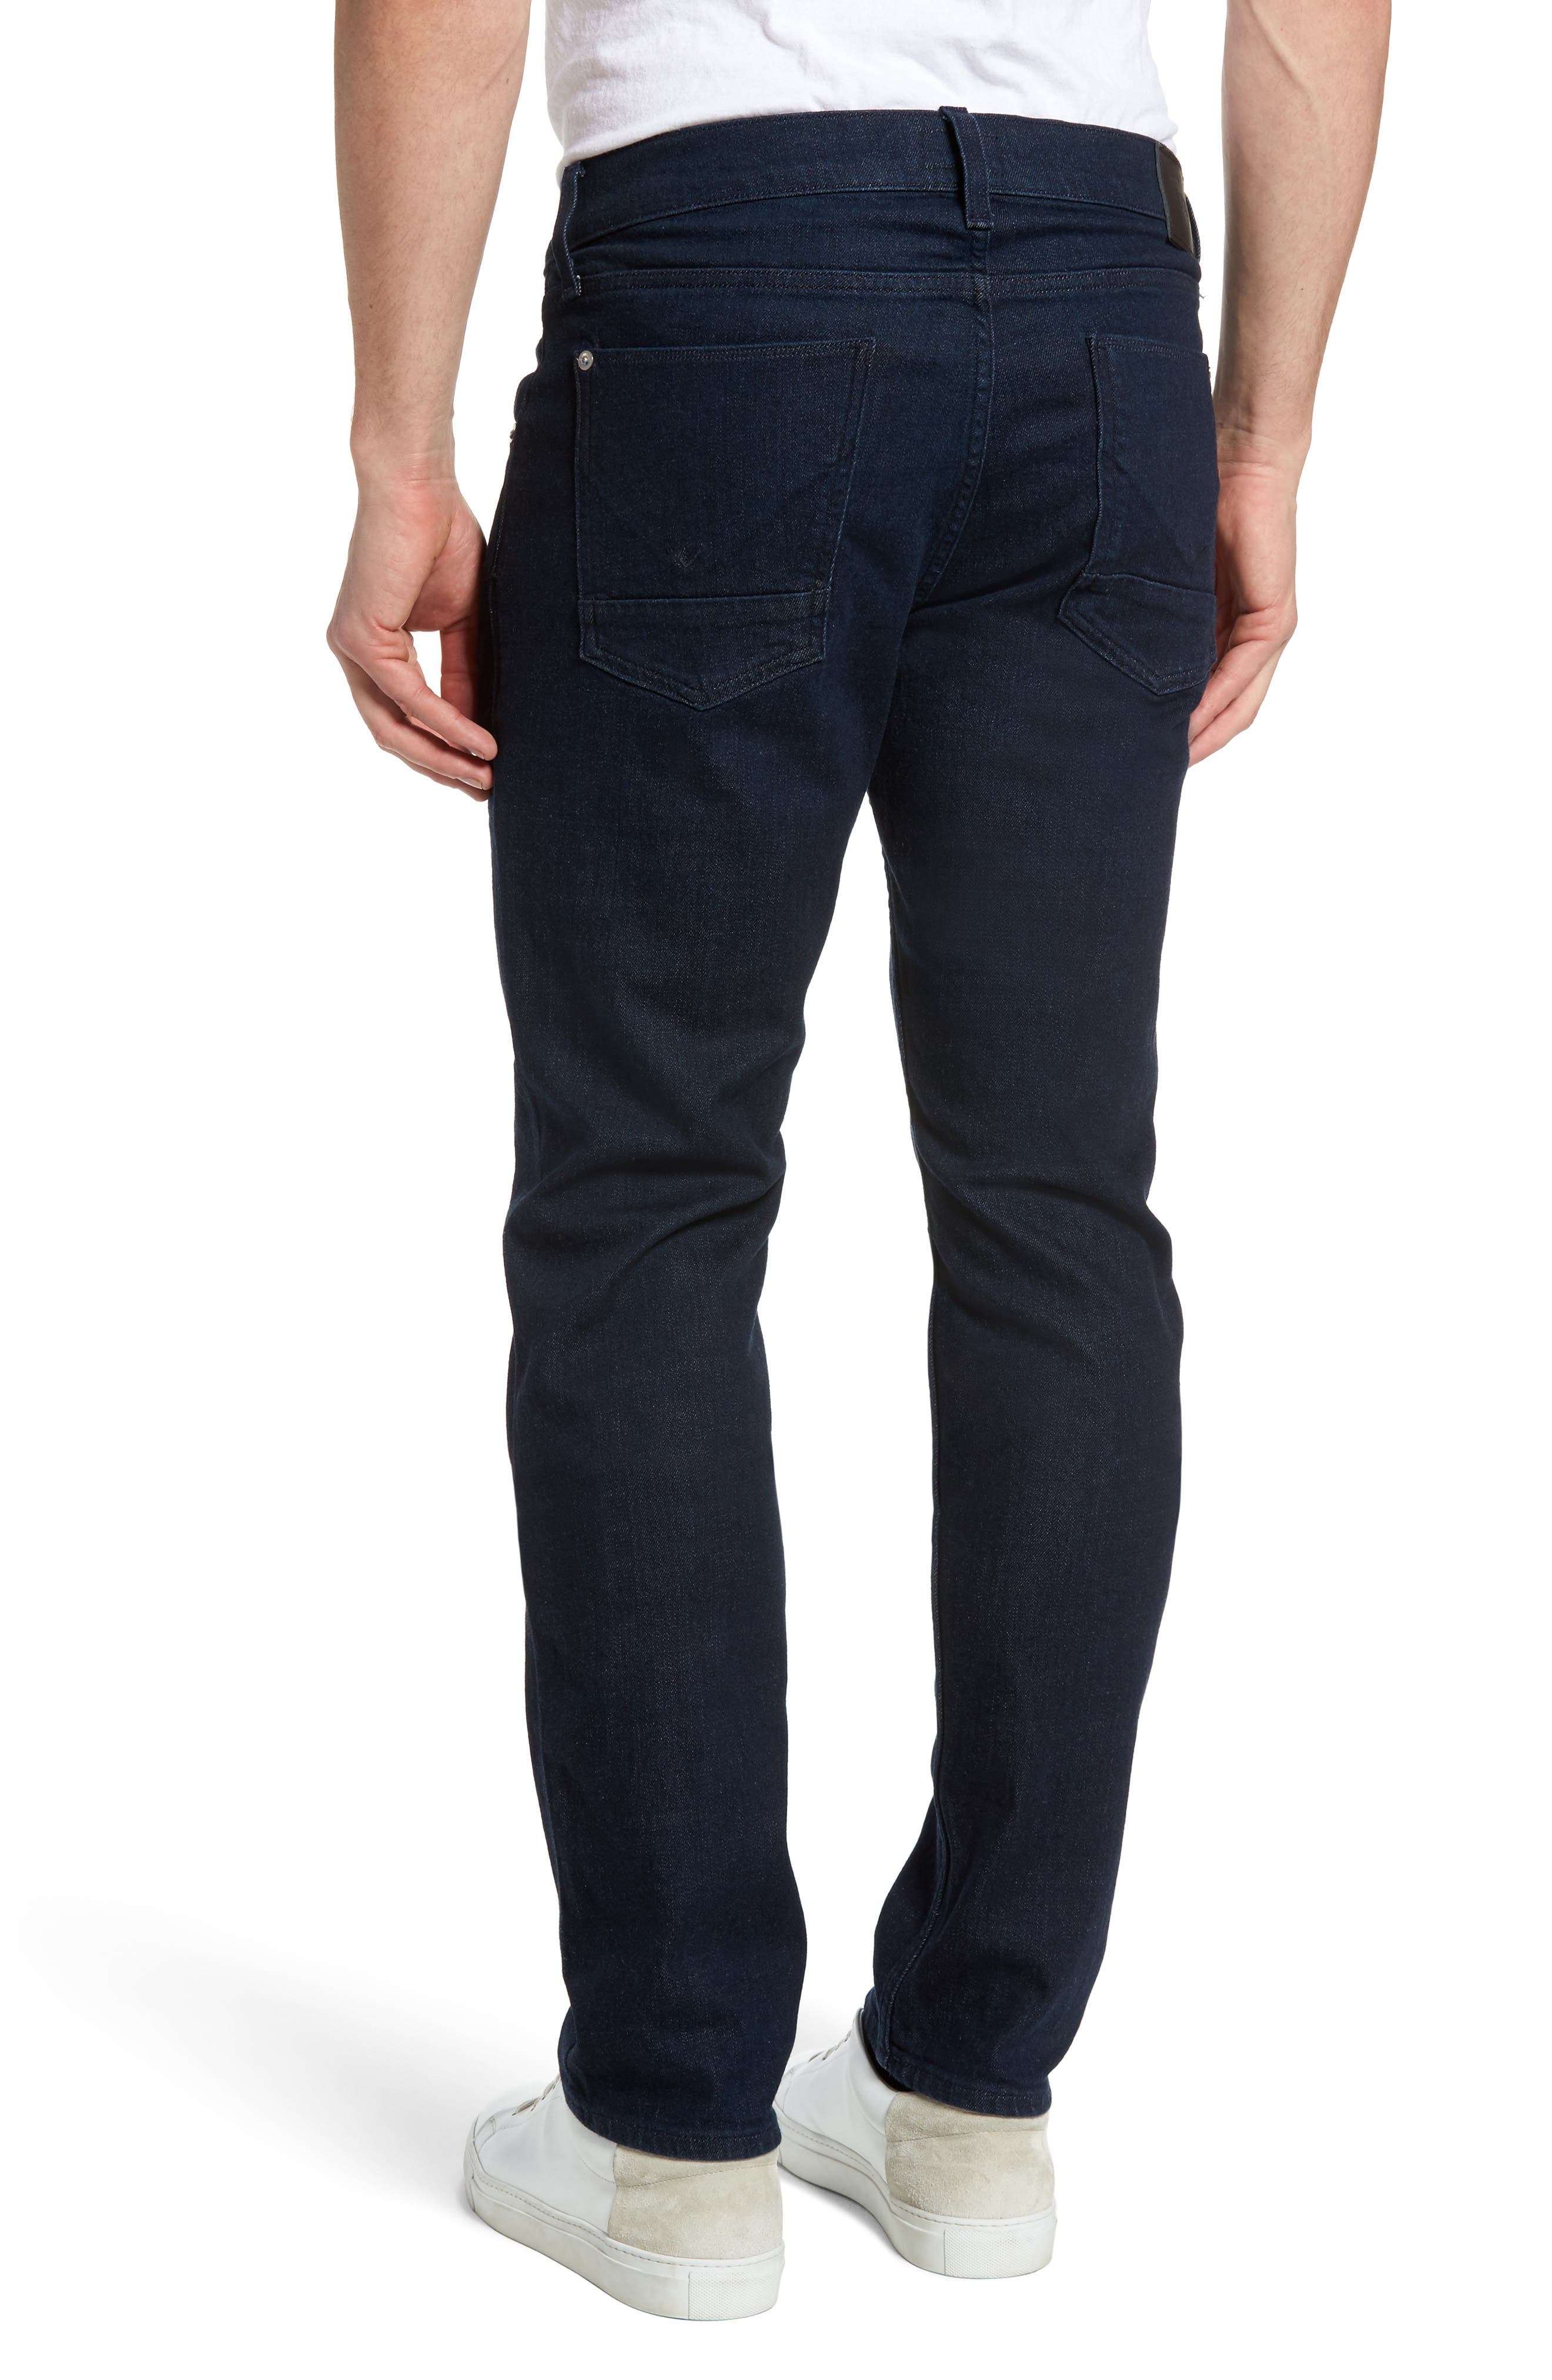 Blake Slim Fit Jeans,                             Alternate thumbnail 2, color,                             411